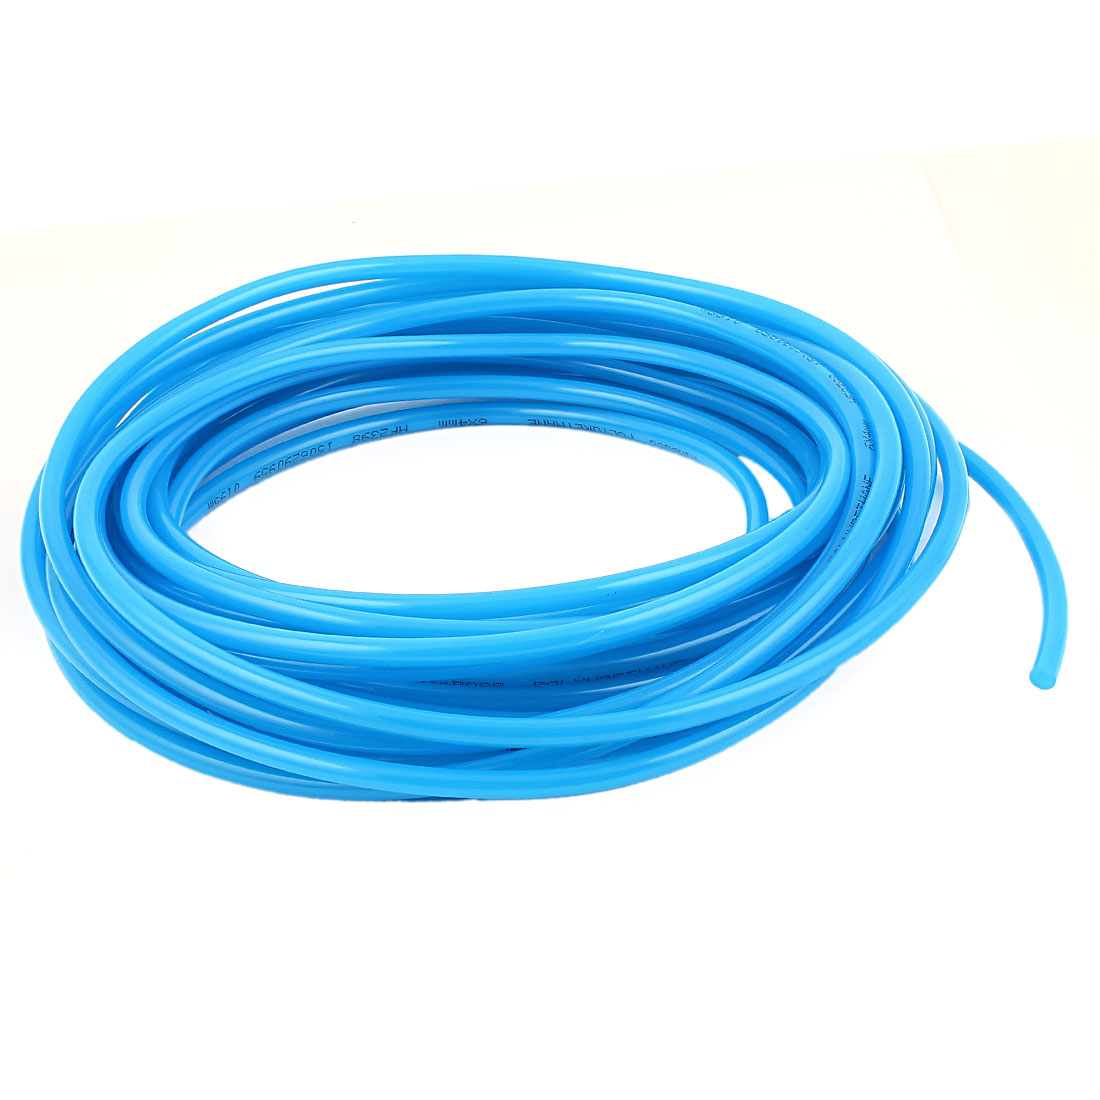 6mm x4mm Blue Pneumatic Polyurethane Hose PU Tube 10M 32.8Ft